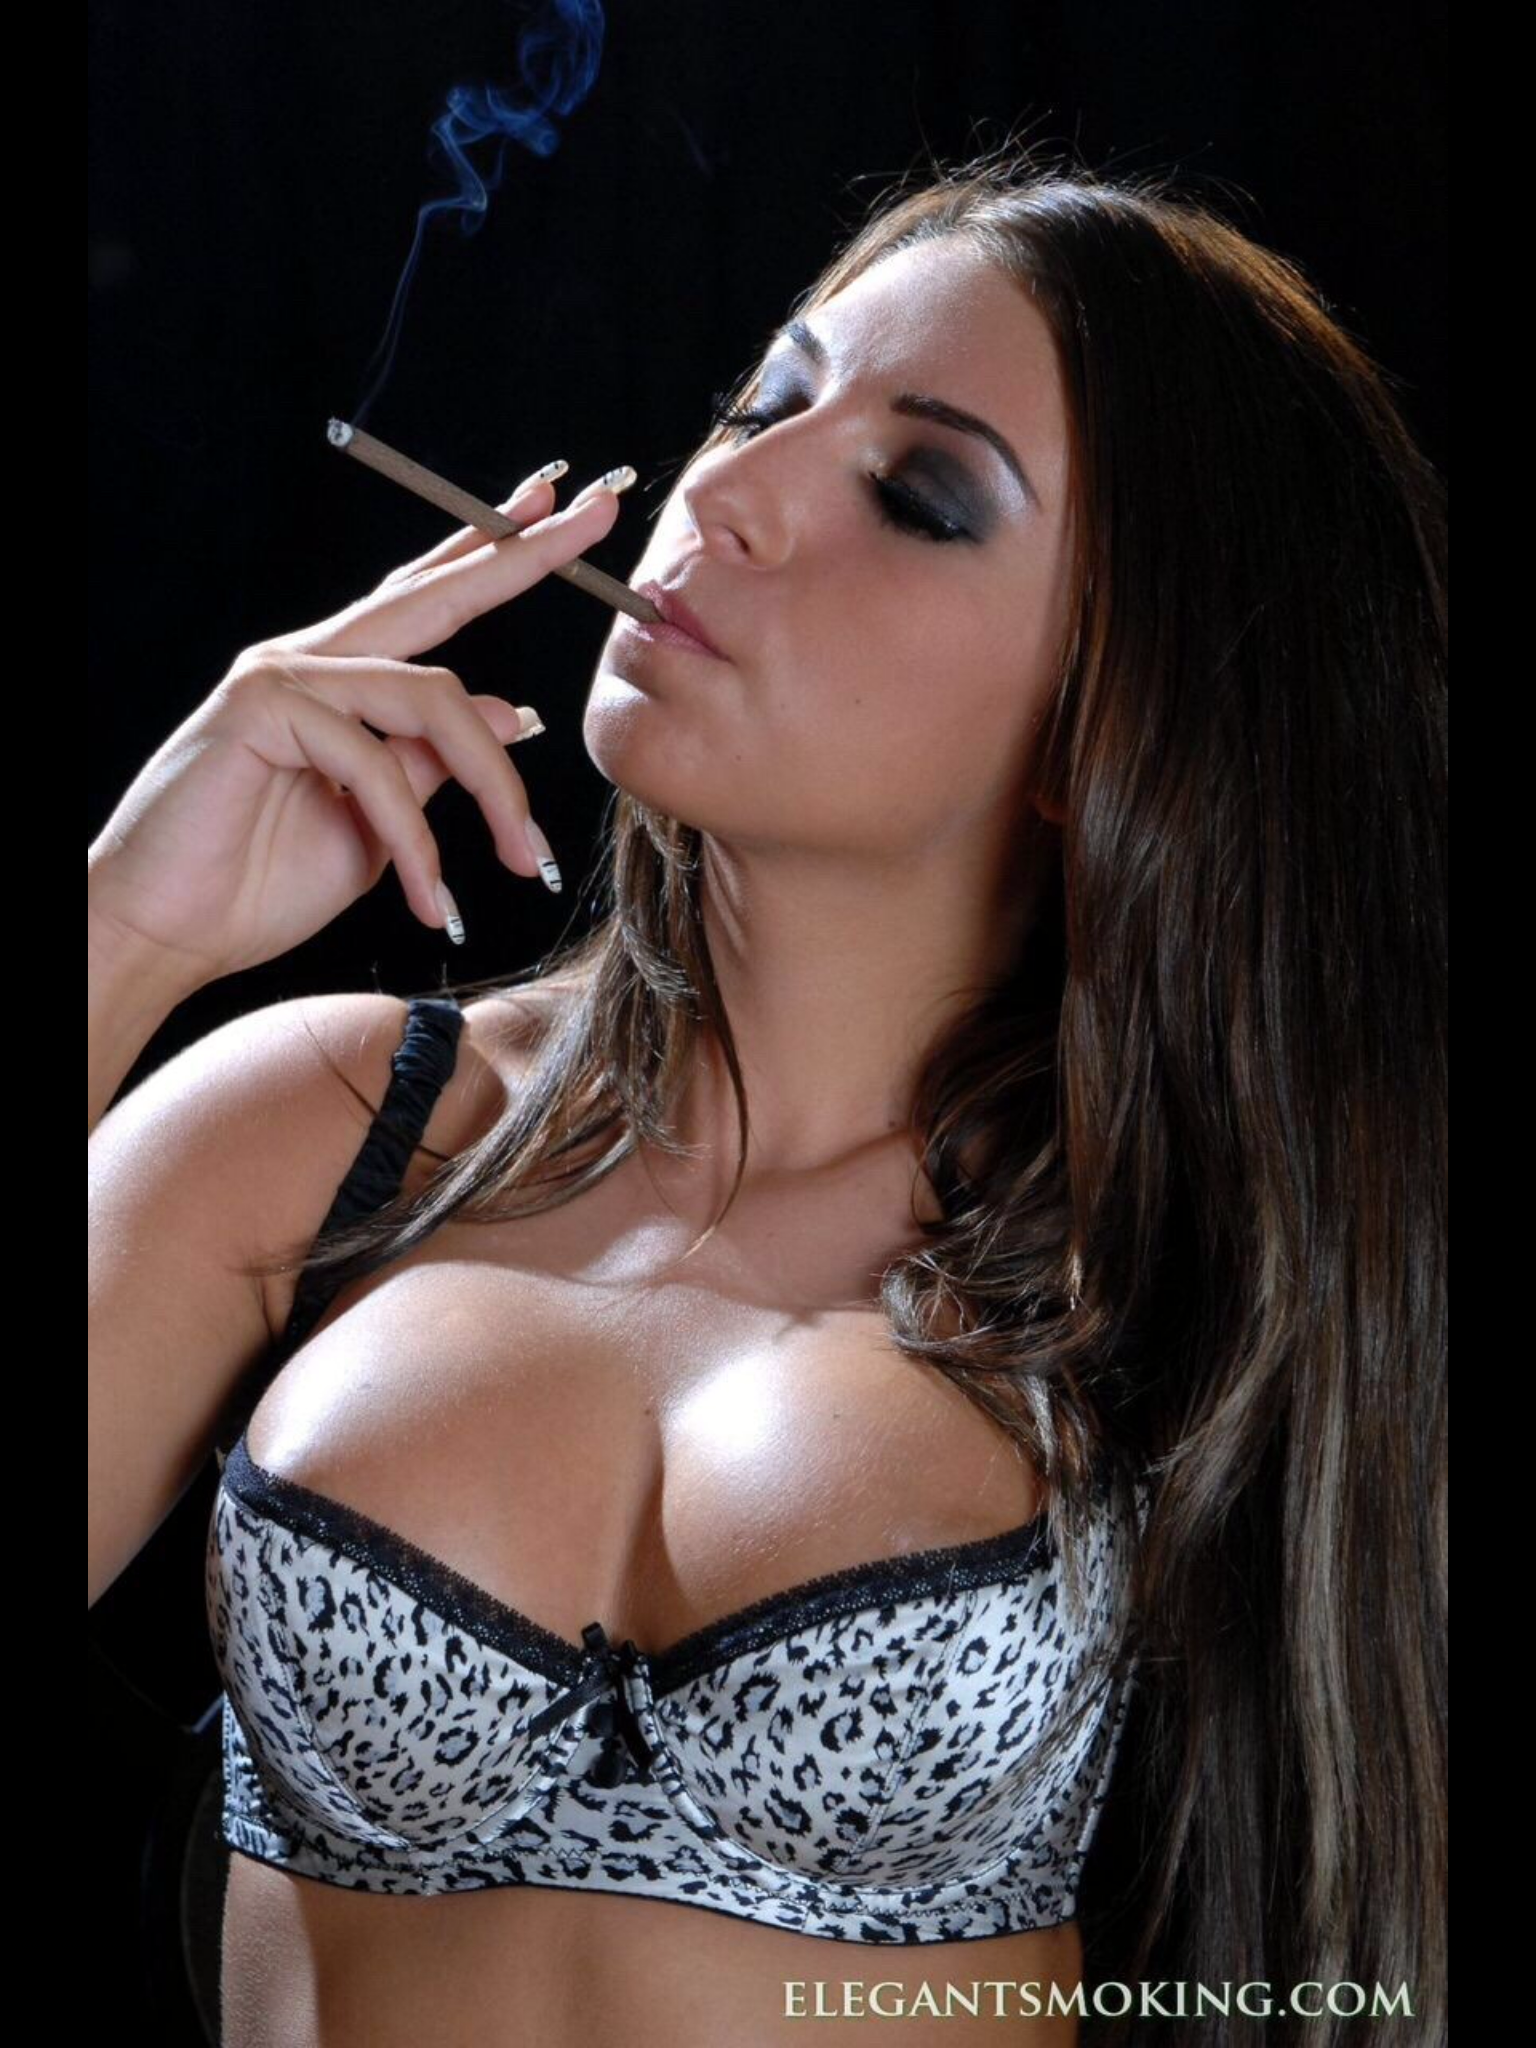 This month's top rated smoking porn pics